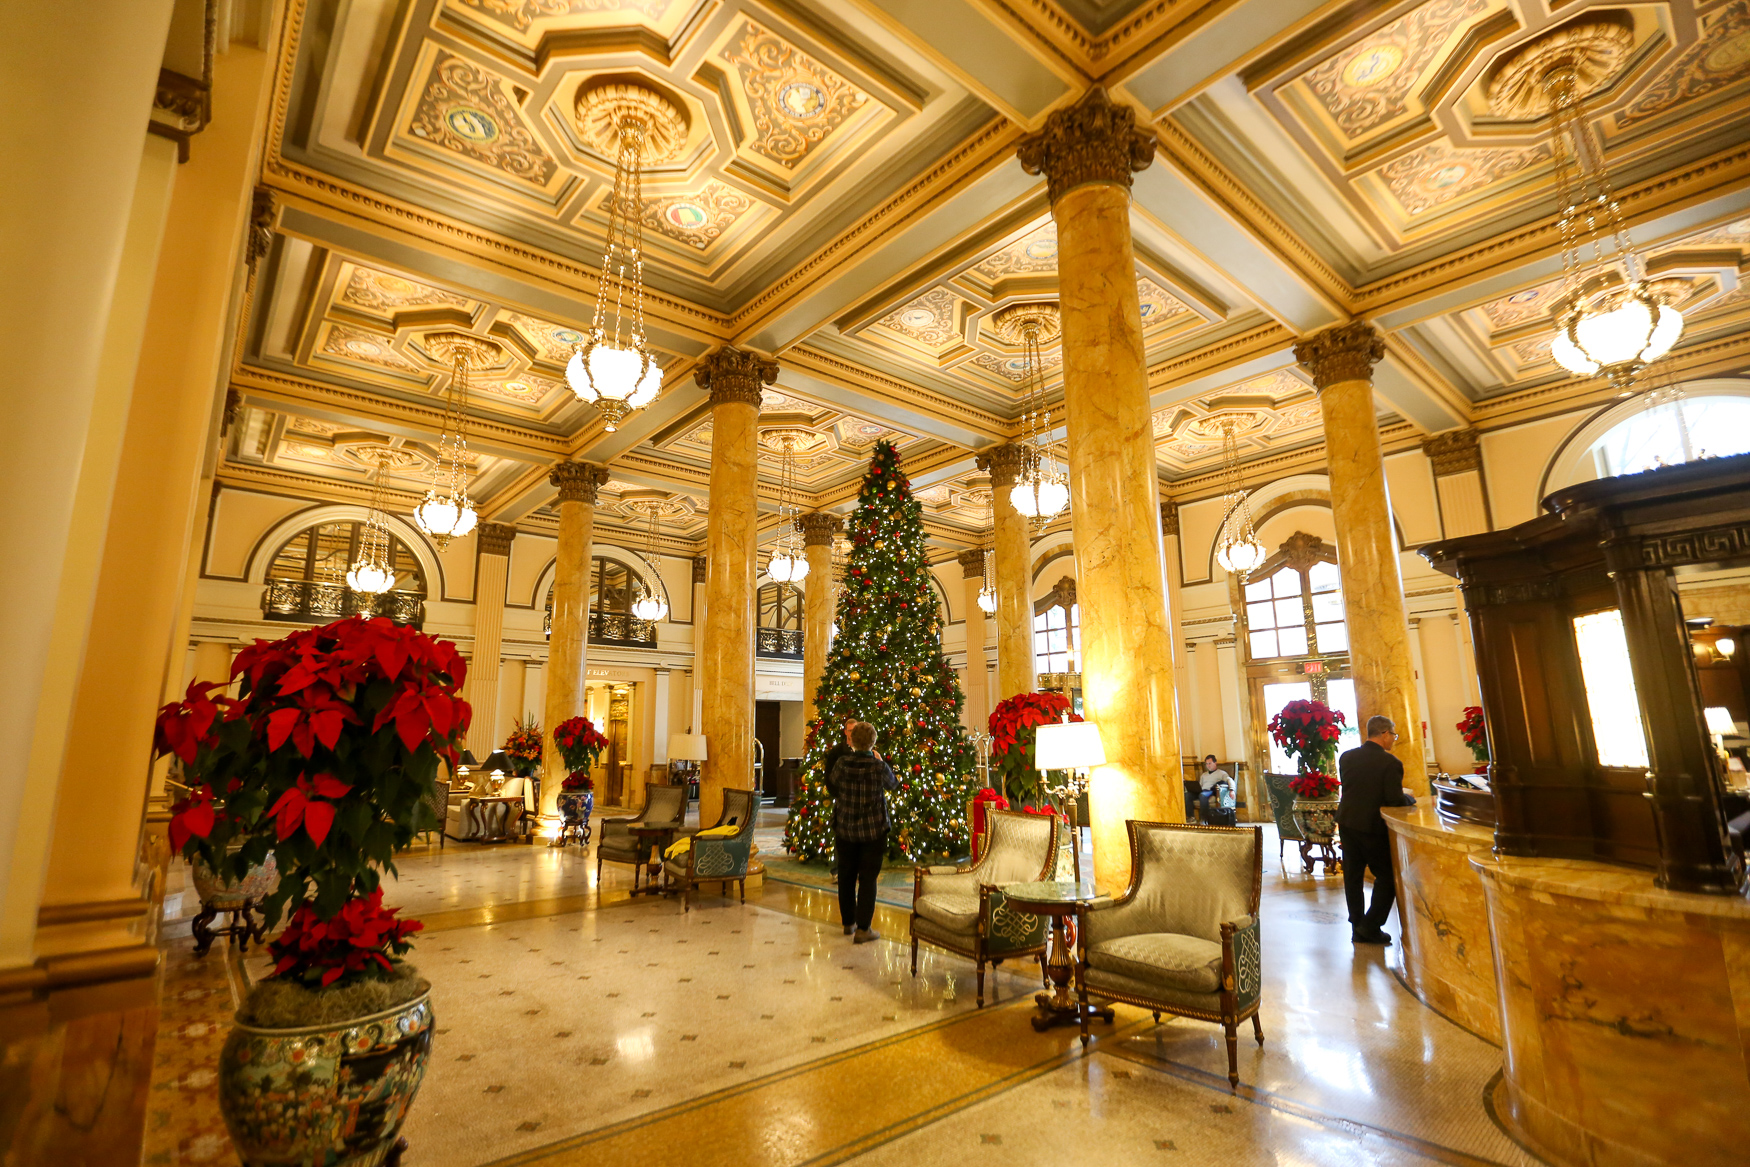 The Willard InterContinental hotel in downtown D.C. is getting ready for Christmas. The historic hotel features dozens of Christmas trees with decor that{ } matches the already-opulent interior. One of the main draws is the trees in the Lincoln Library, which features the{ }White House Ornament Collection. The collection honors each president or a special event in the White House. The hotel is fully decorated as of this week and it's worth a visit if you're looking to get into the holiday spirit. (Amanda Andrade-Rhoades/DC Refined)